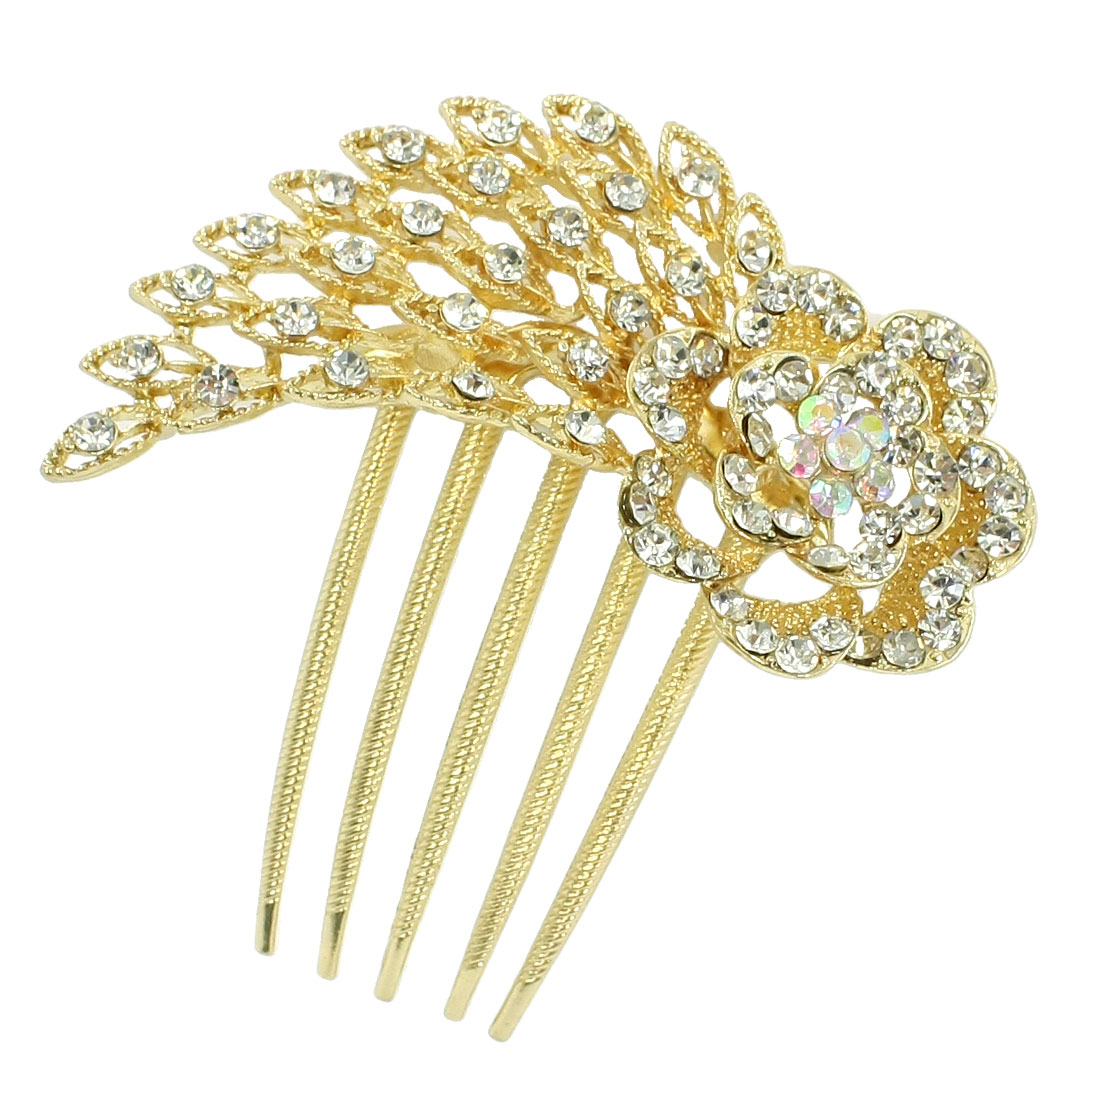 Lady Floral Shaped 5 Teeth Metal Hair Comb Clip Clamp Gold Tone Clear